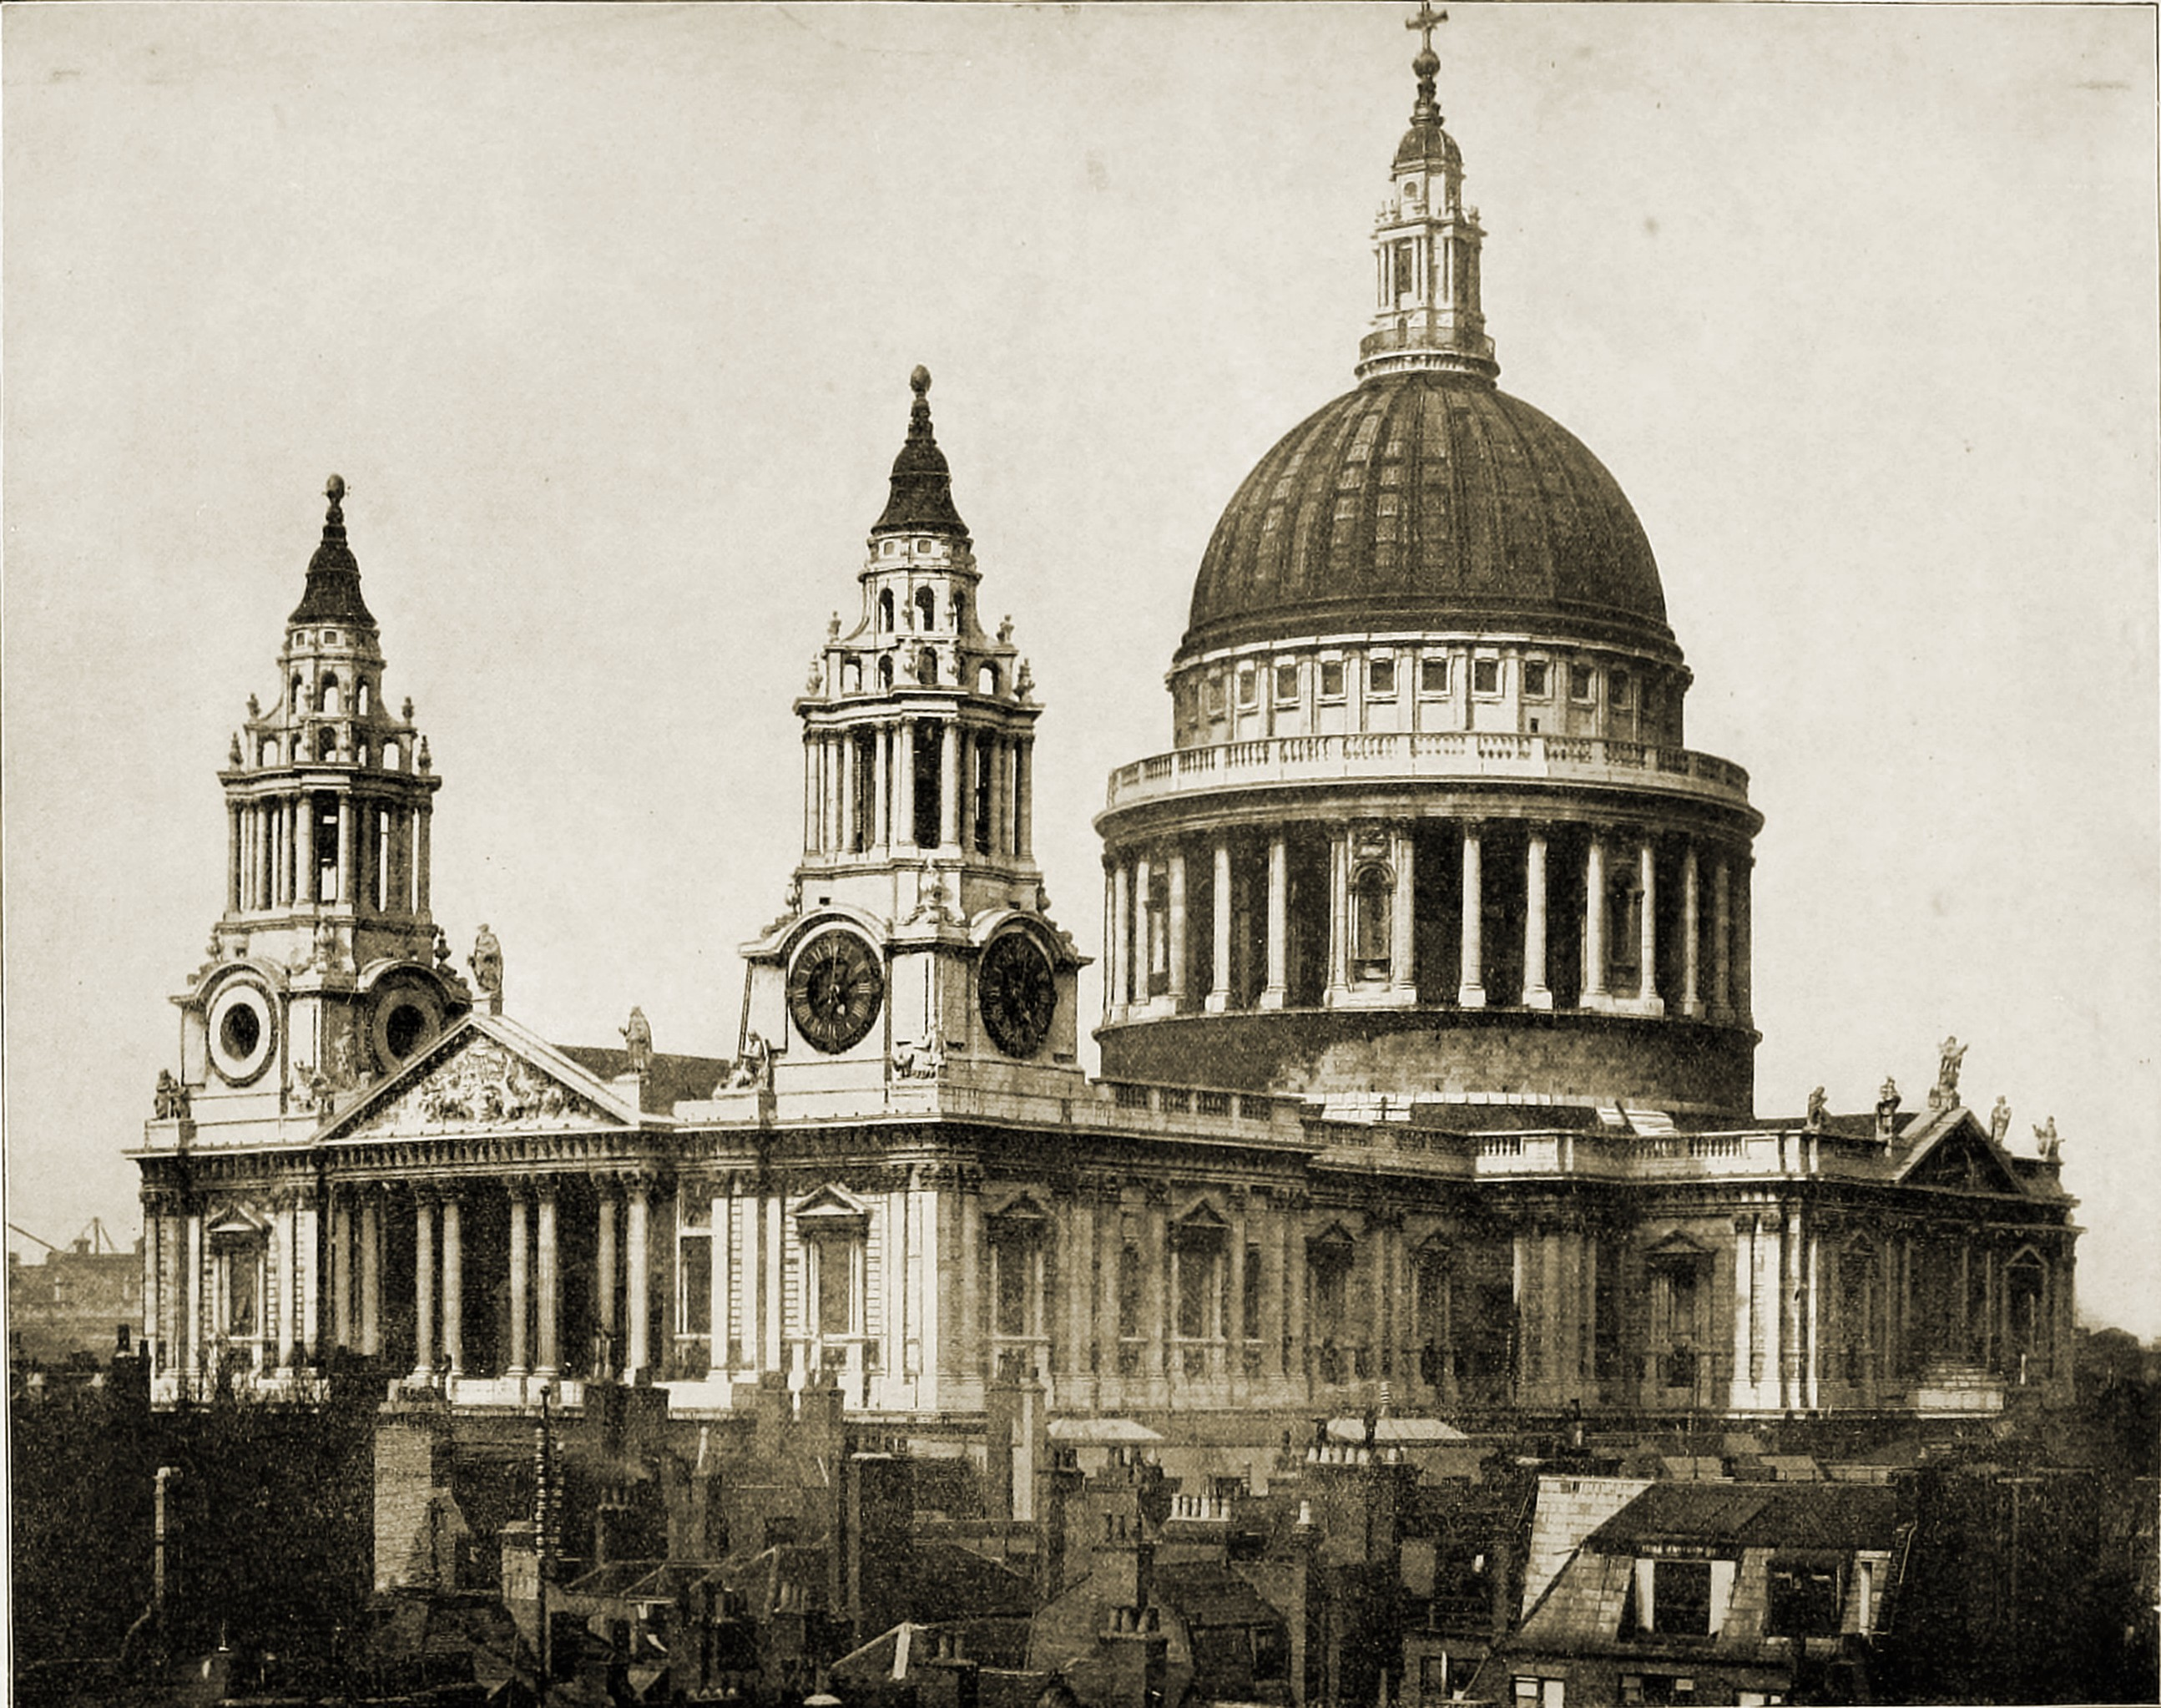 St. Paul's Cathedral London England about 1892